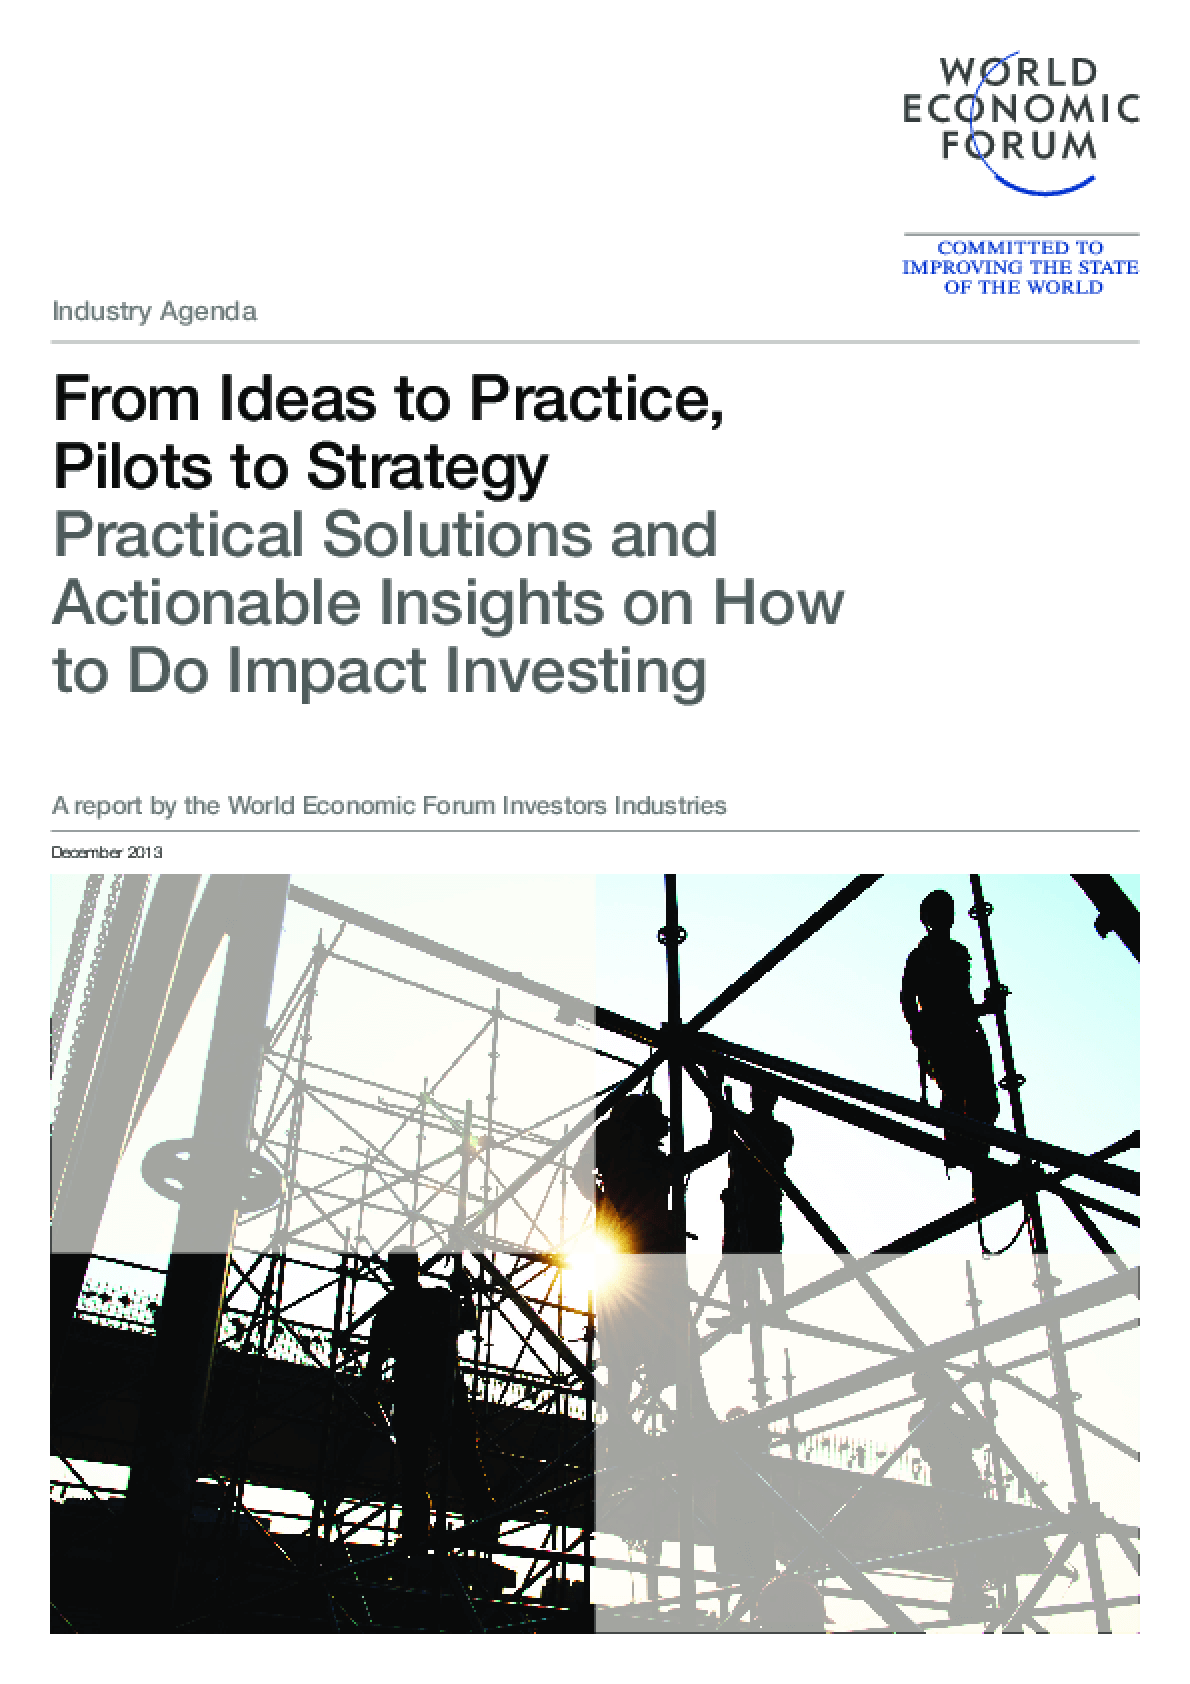 From Ideas to Practice, Pilots to Strategy: Practical Solutions and Actionable Insights on How to Do Impact Investing